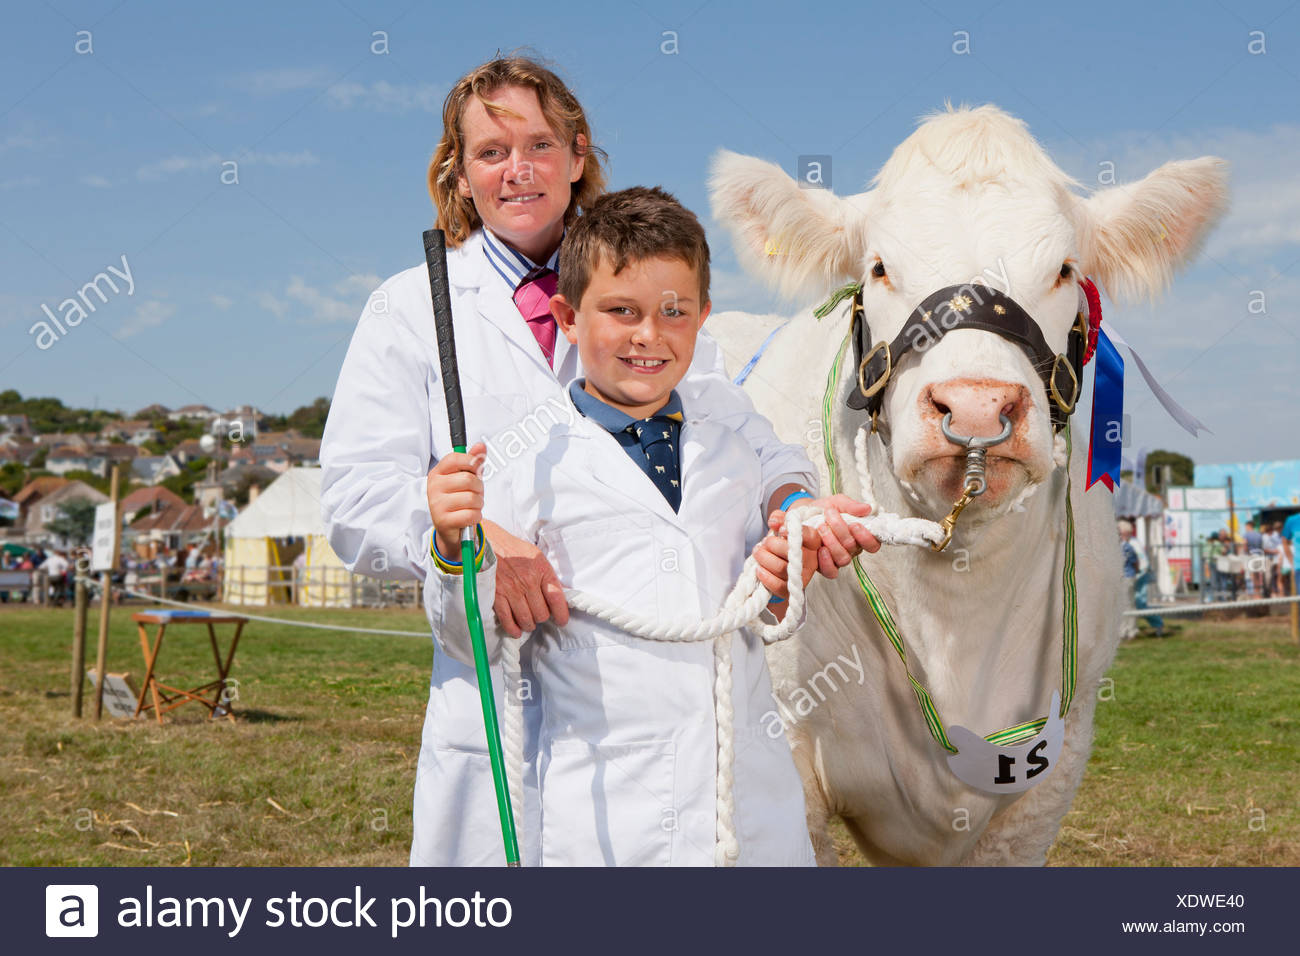 Mother And Son With Prize Winning Cow At Agricultural Show - Stock Image